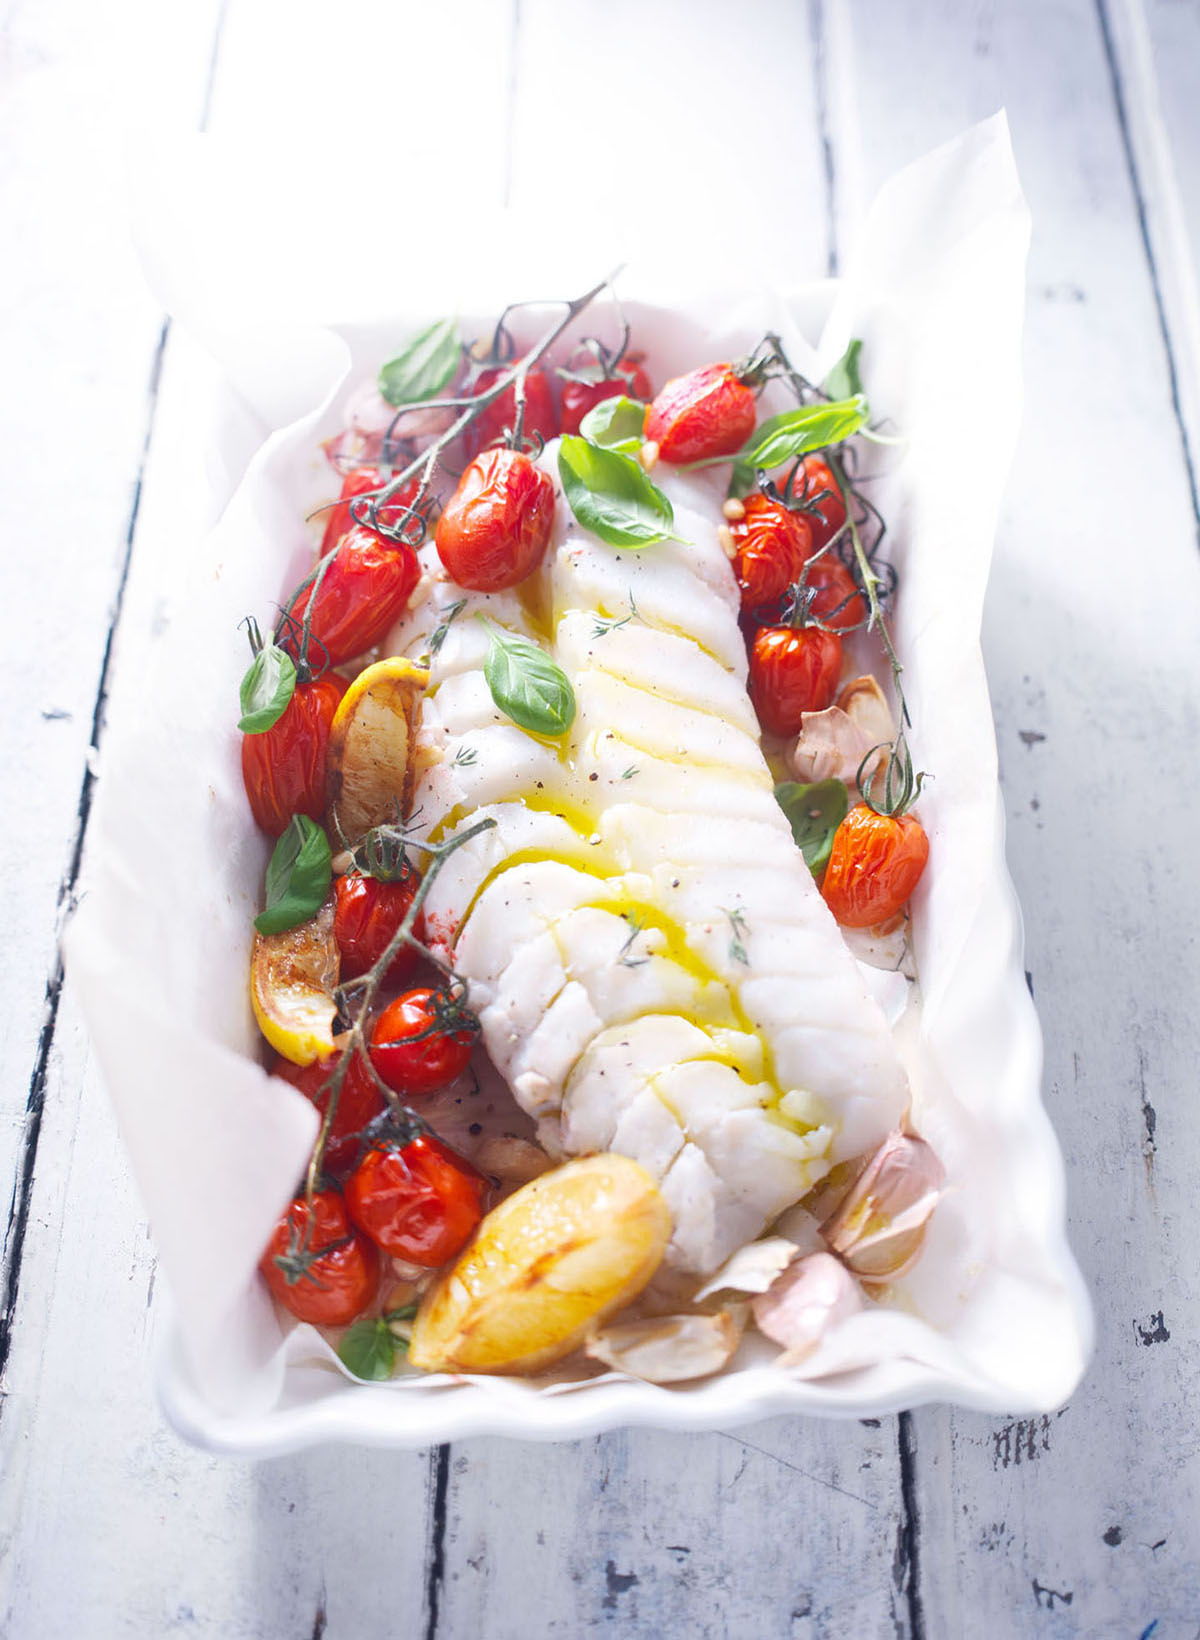 Fish & Tomatoes in oven dish